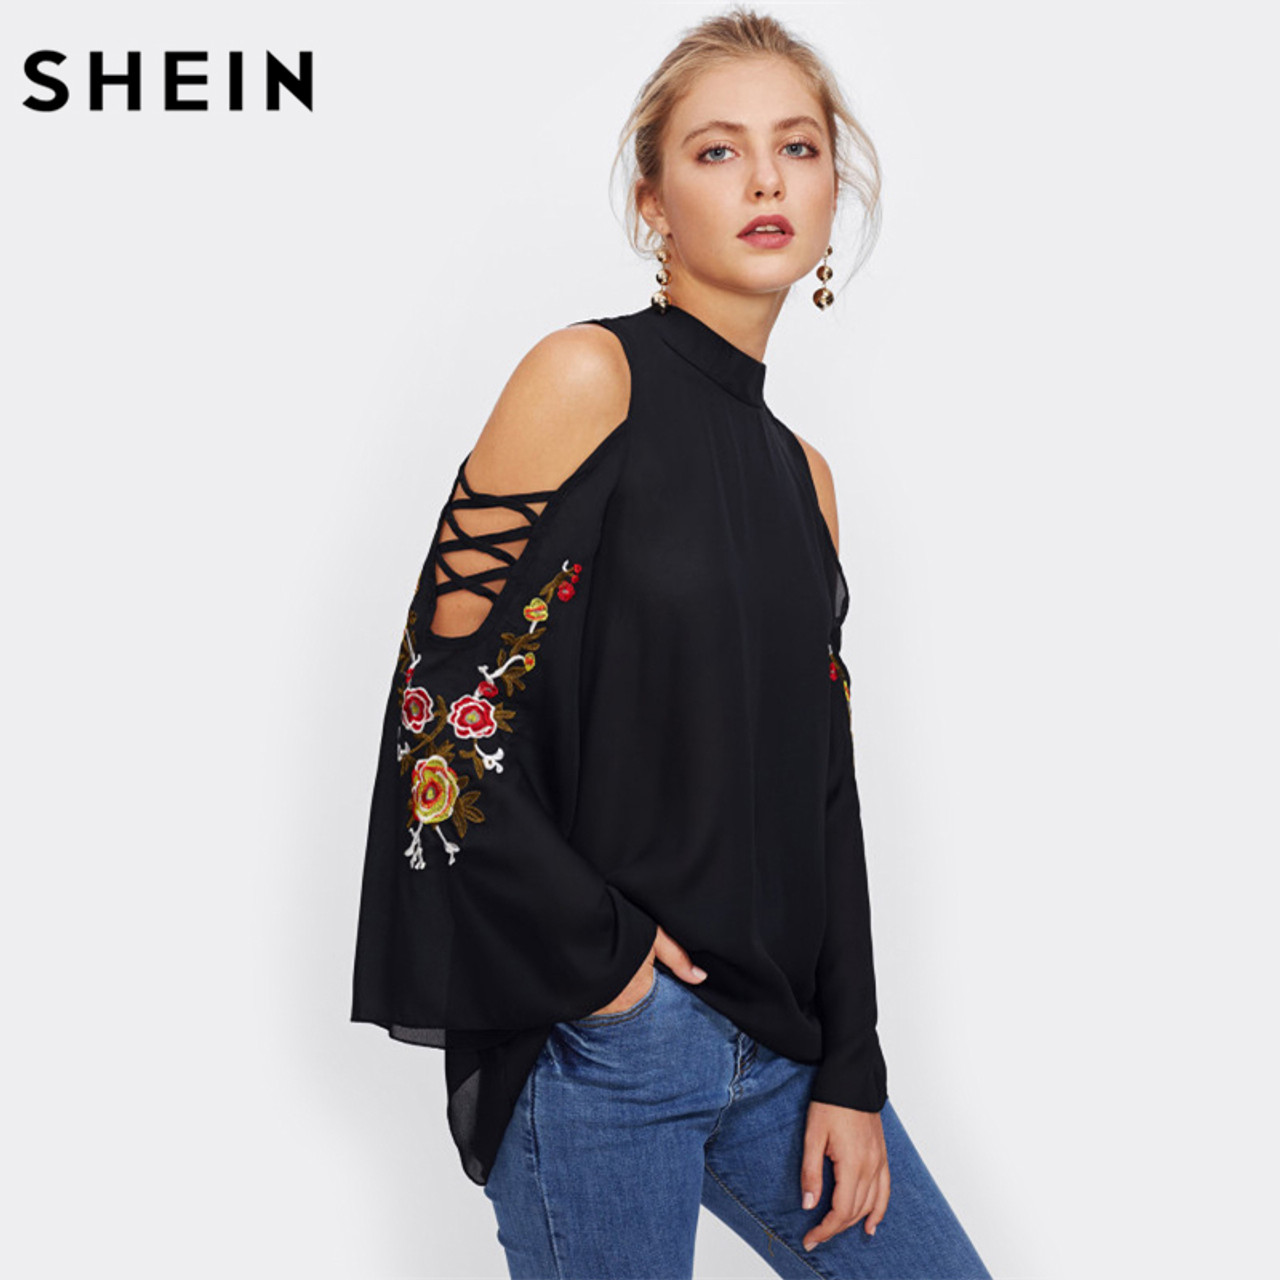 c72e647c2368c ... SHEIN Casual Women Tops Crisscross Open Shoulder Embroidery Flare  Sleeve Blouse Black Stand Collar Long Sleeve ...